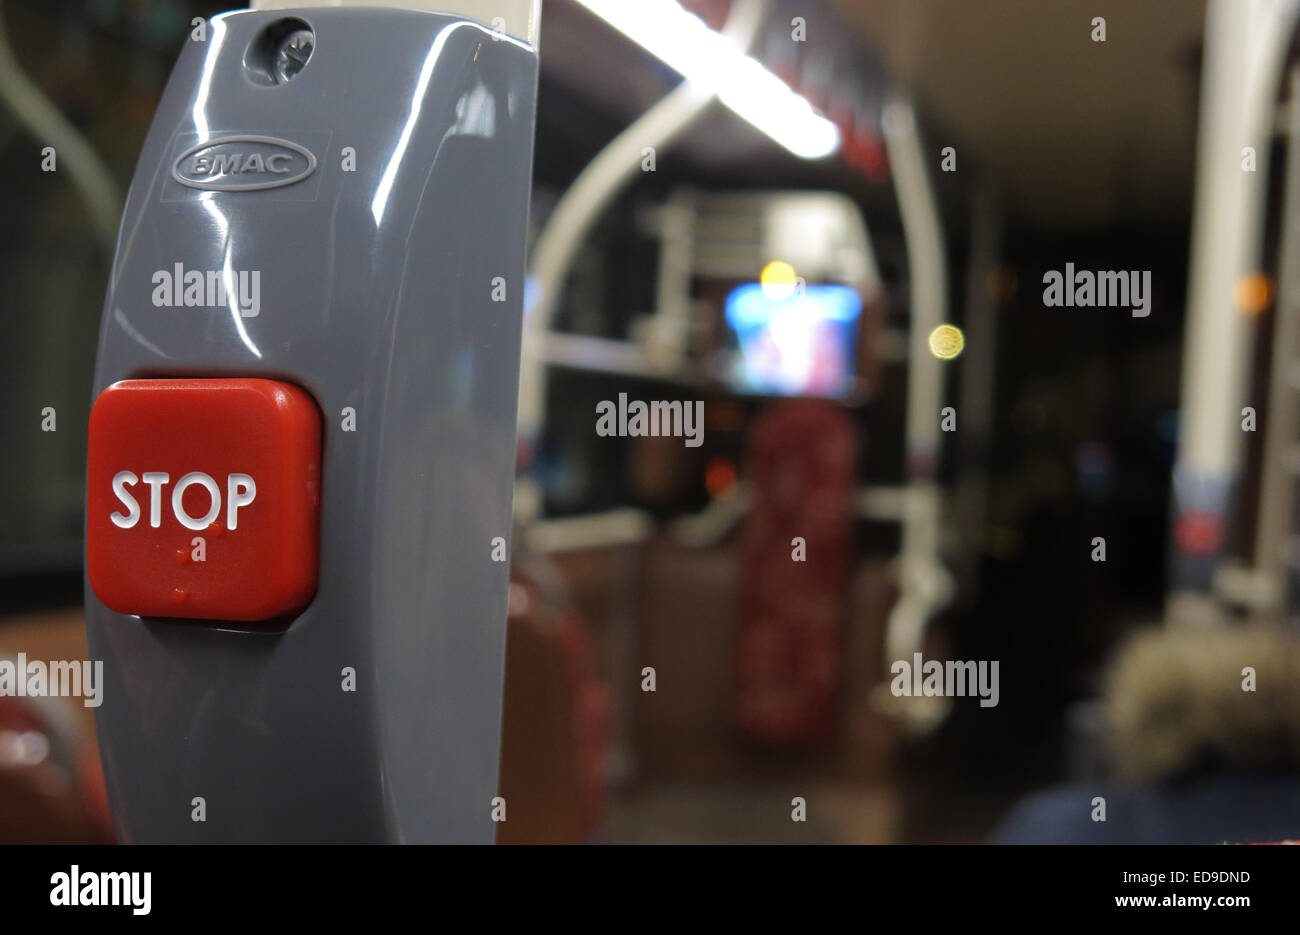 Red Stop button on a public bus, Lothian Scotland, out of focus (with Braille ) at night Stock Photo